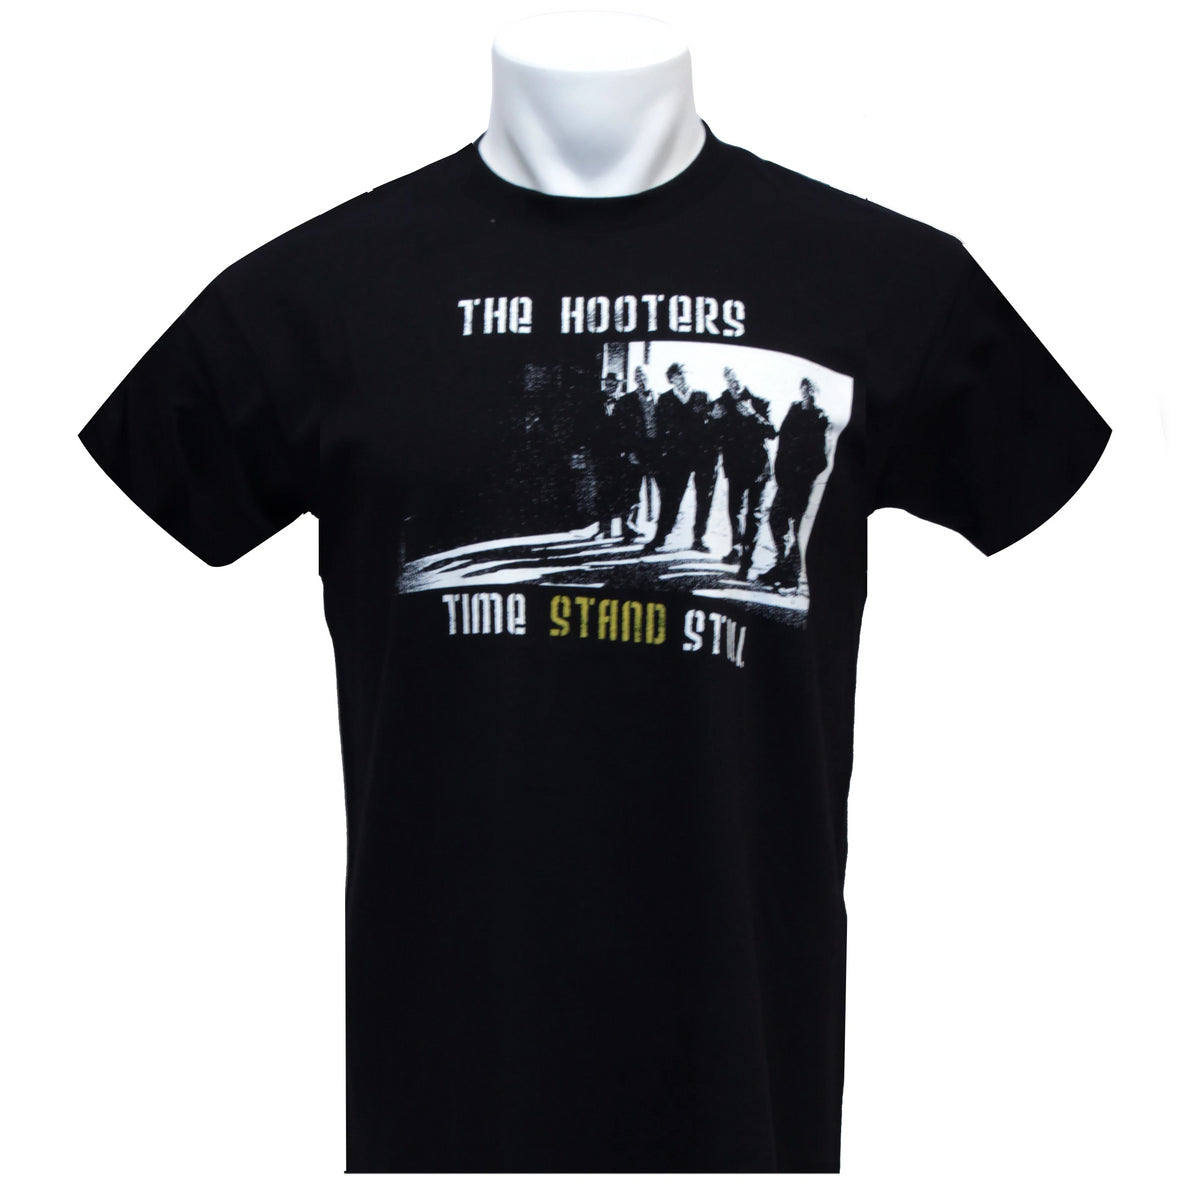 Time Stand Still 2007 Tour Tee